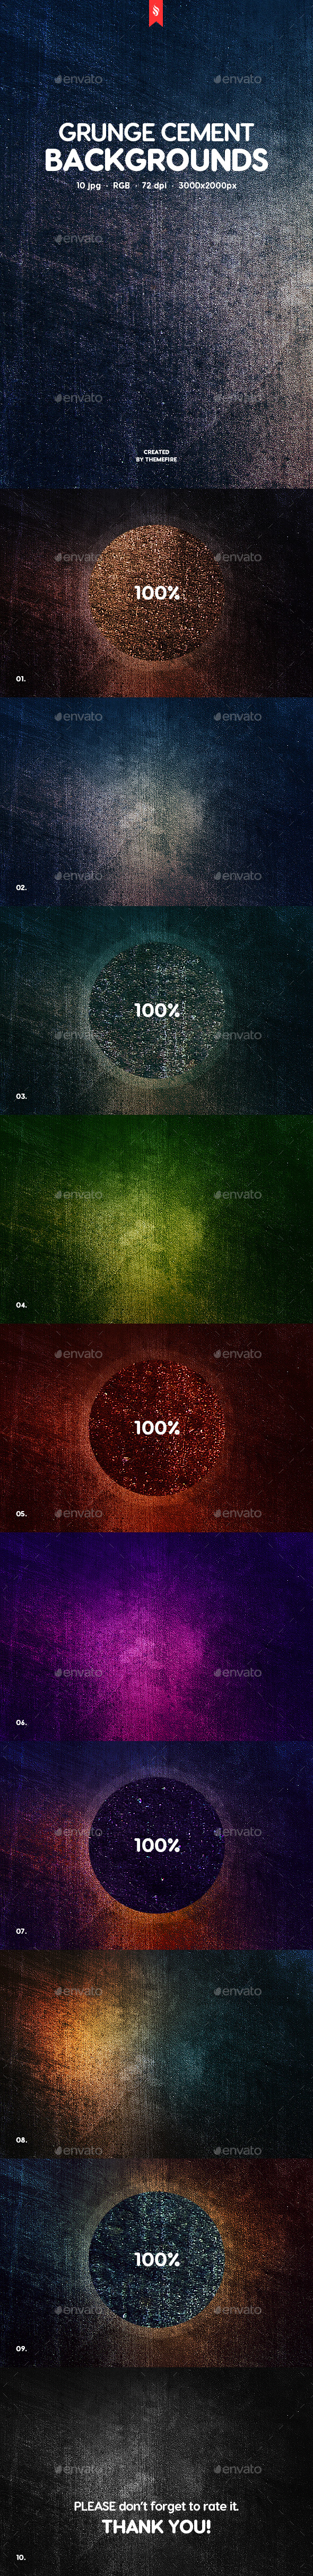 Grunge Cement Backgrounds - Urban Backgrounds